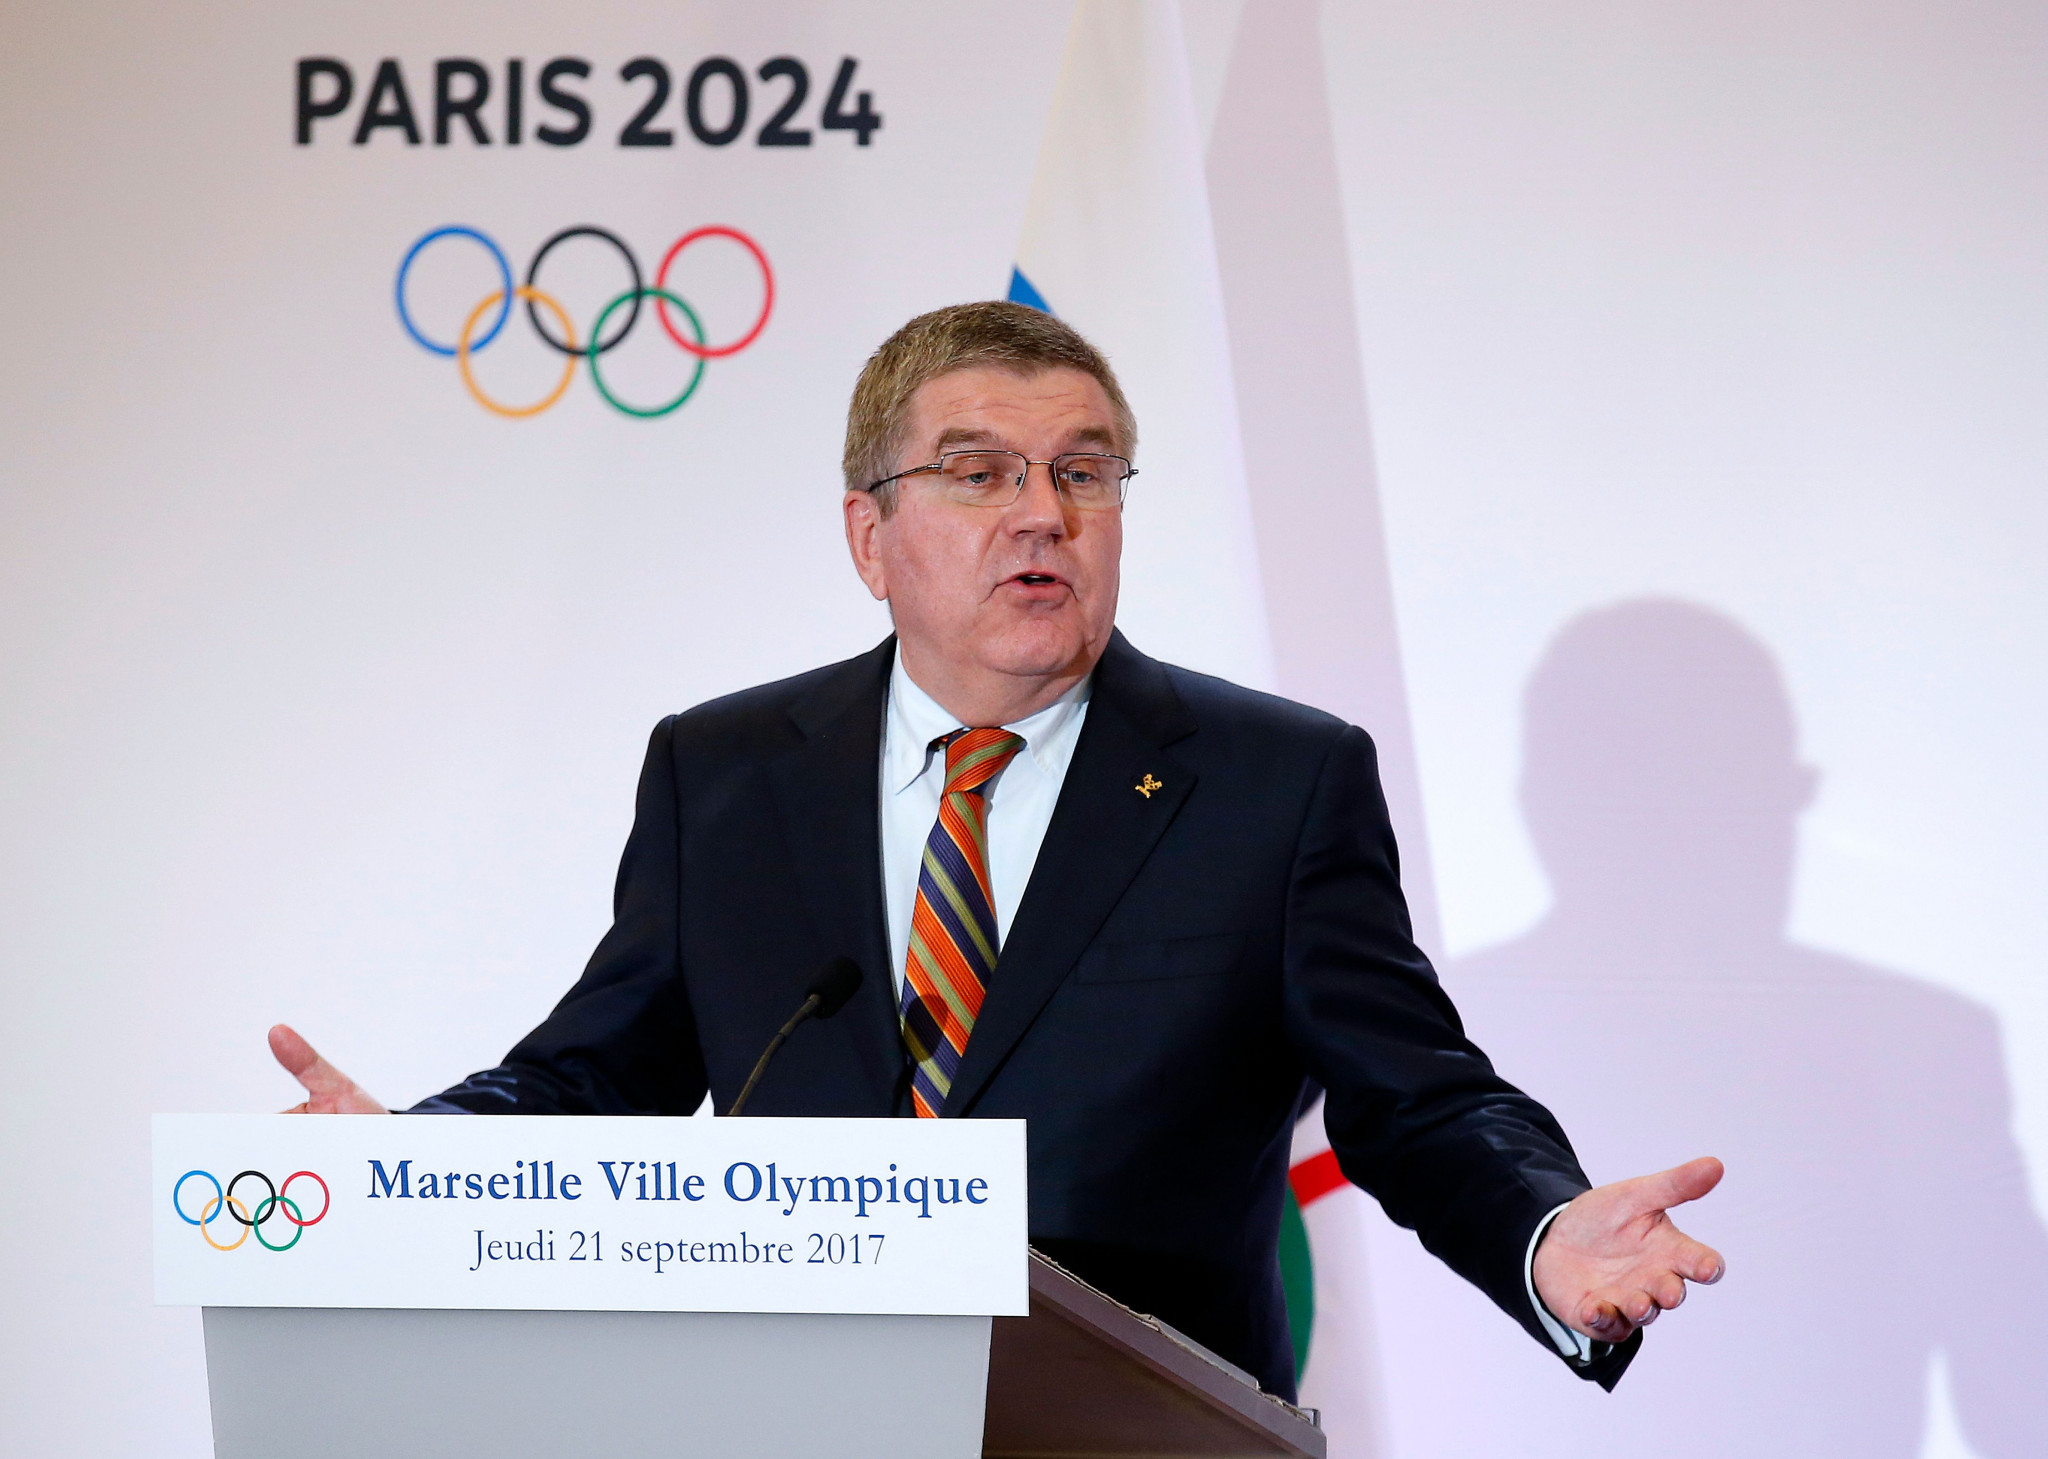 IOC President Thomas Bach has warned weightlifting to address their doping problem or lose their place on the Olympic programme ©Getty Images